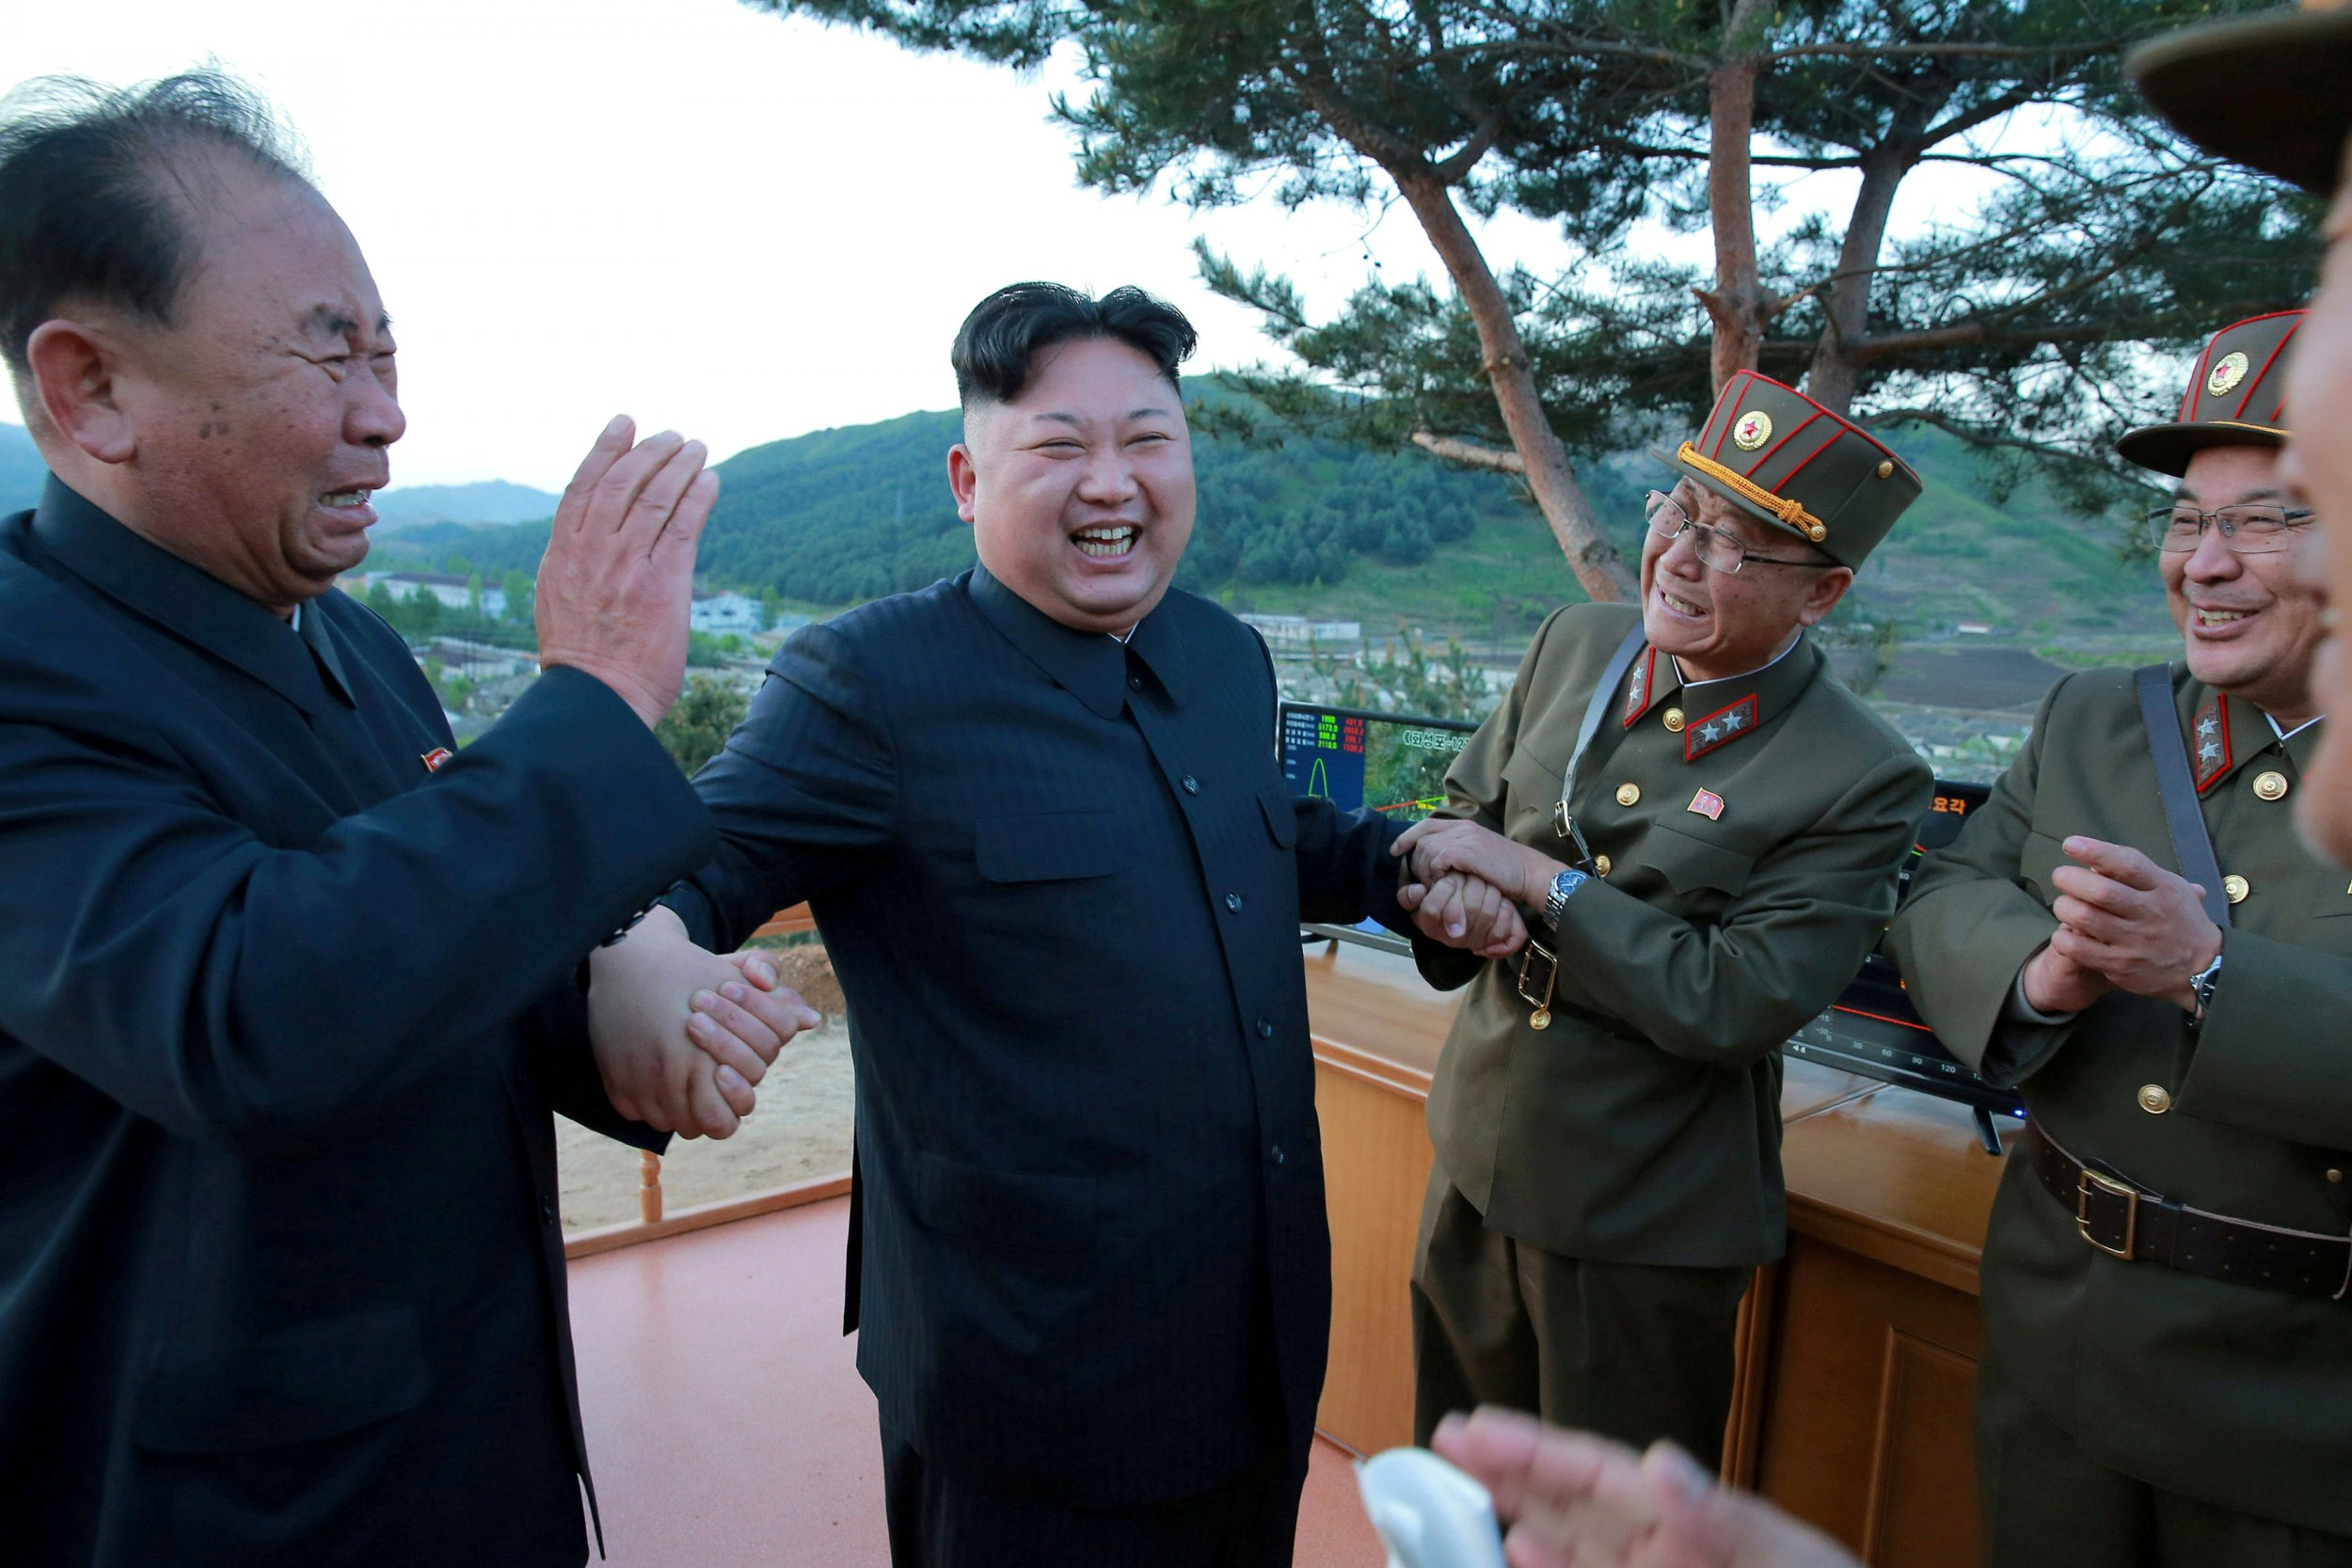 North Korea S Power Trio Who Are The Men Smiling With Kim Jong Un After Missile Launches